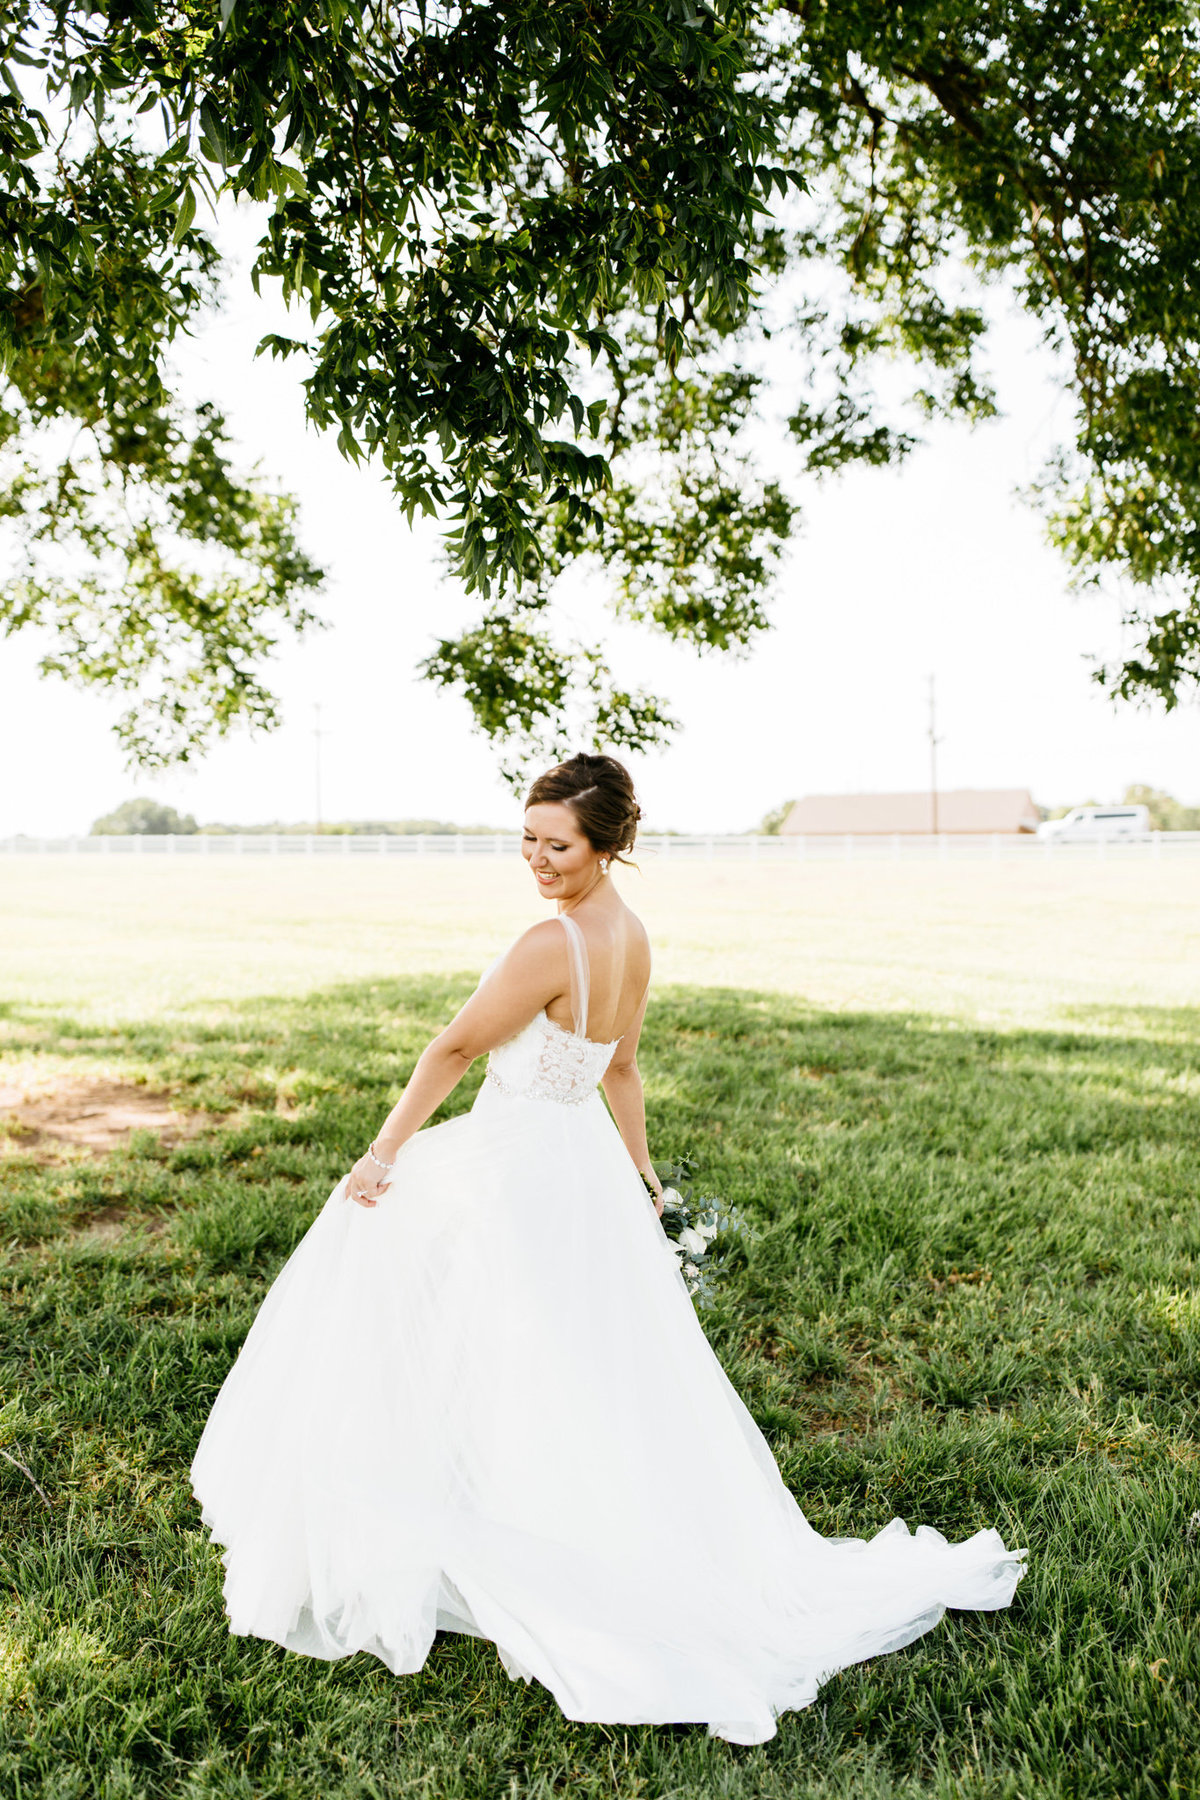 Alexa-Vossler-Photo_Dallas-Wedding-Photographer_North-Texas-Wedding-Photographer_Stephanie-Chase-Wedding-at-Morgan-Creek-Barn-Aubrey-Texas_28